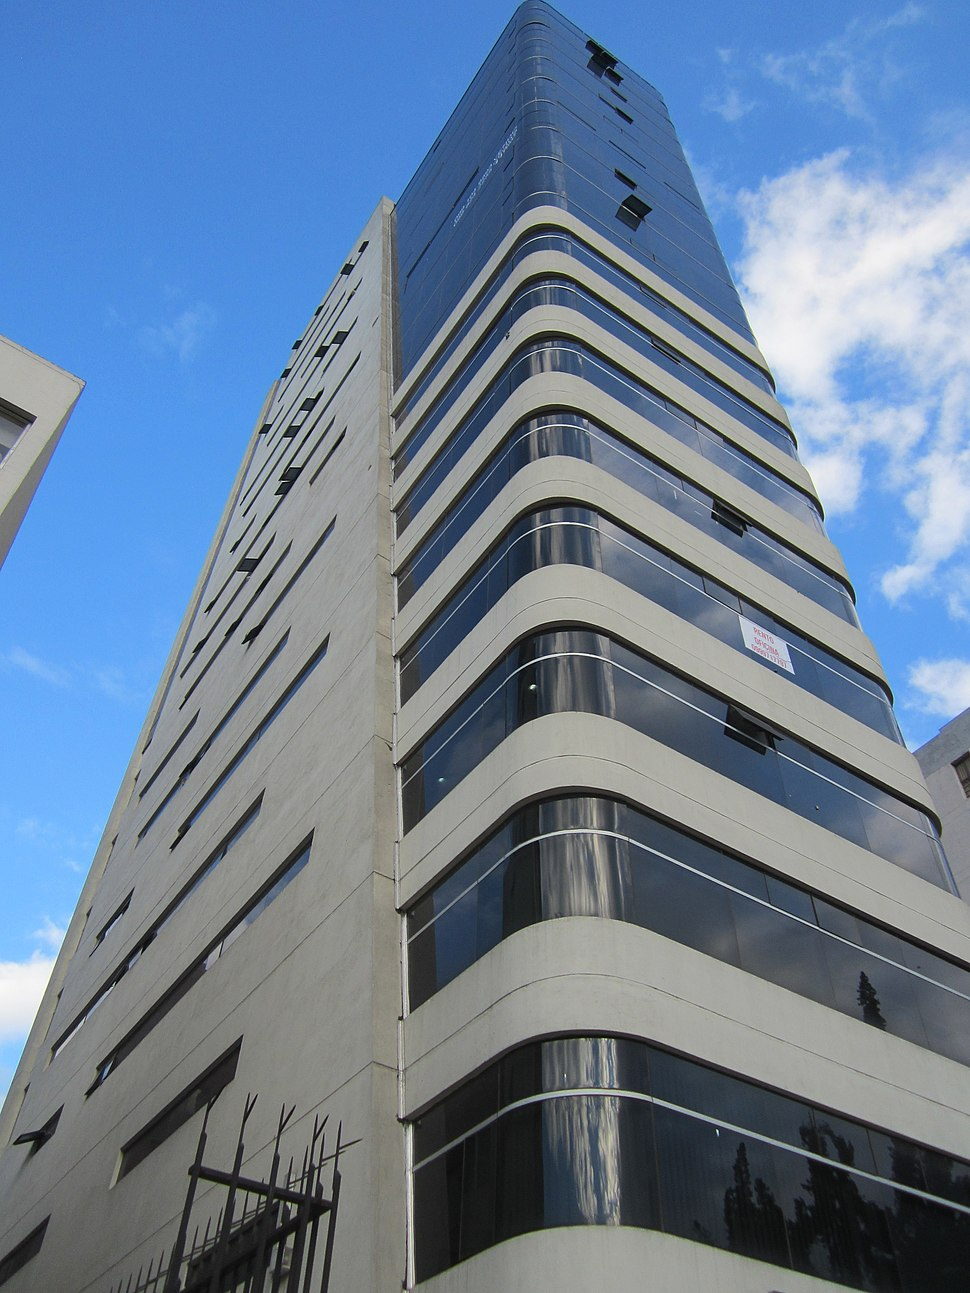 Highrises in Quito, Modern Building in Quito, capital city of Ecuador,.picture.zz8